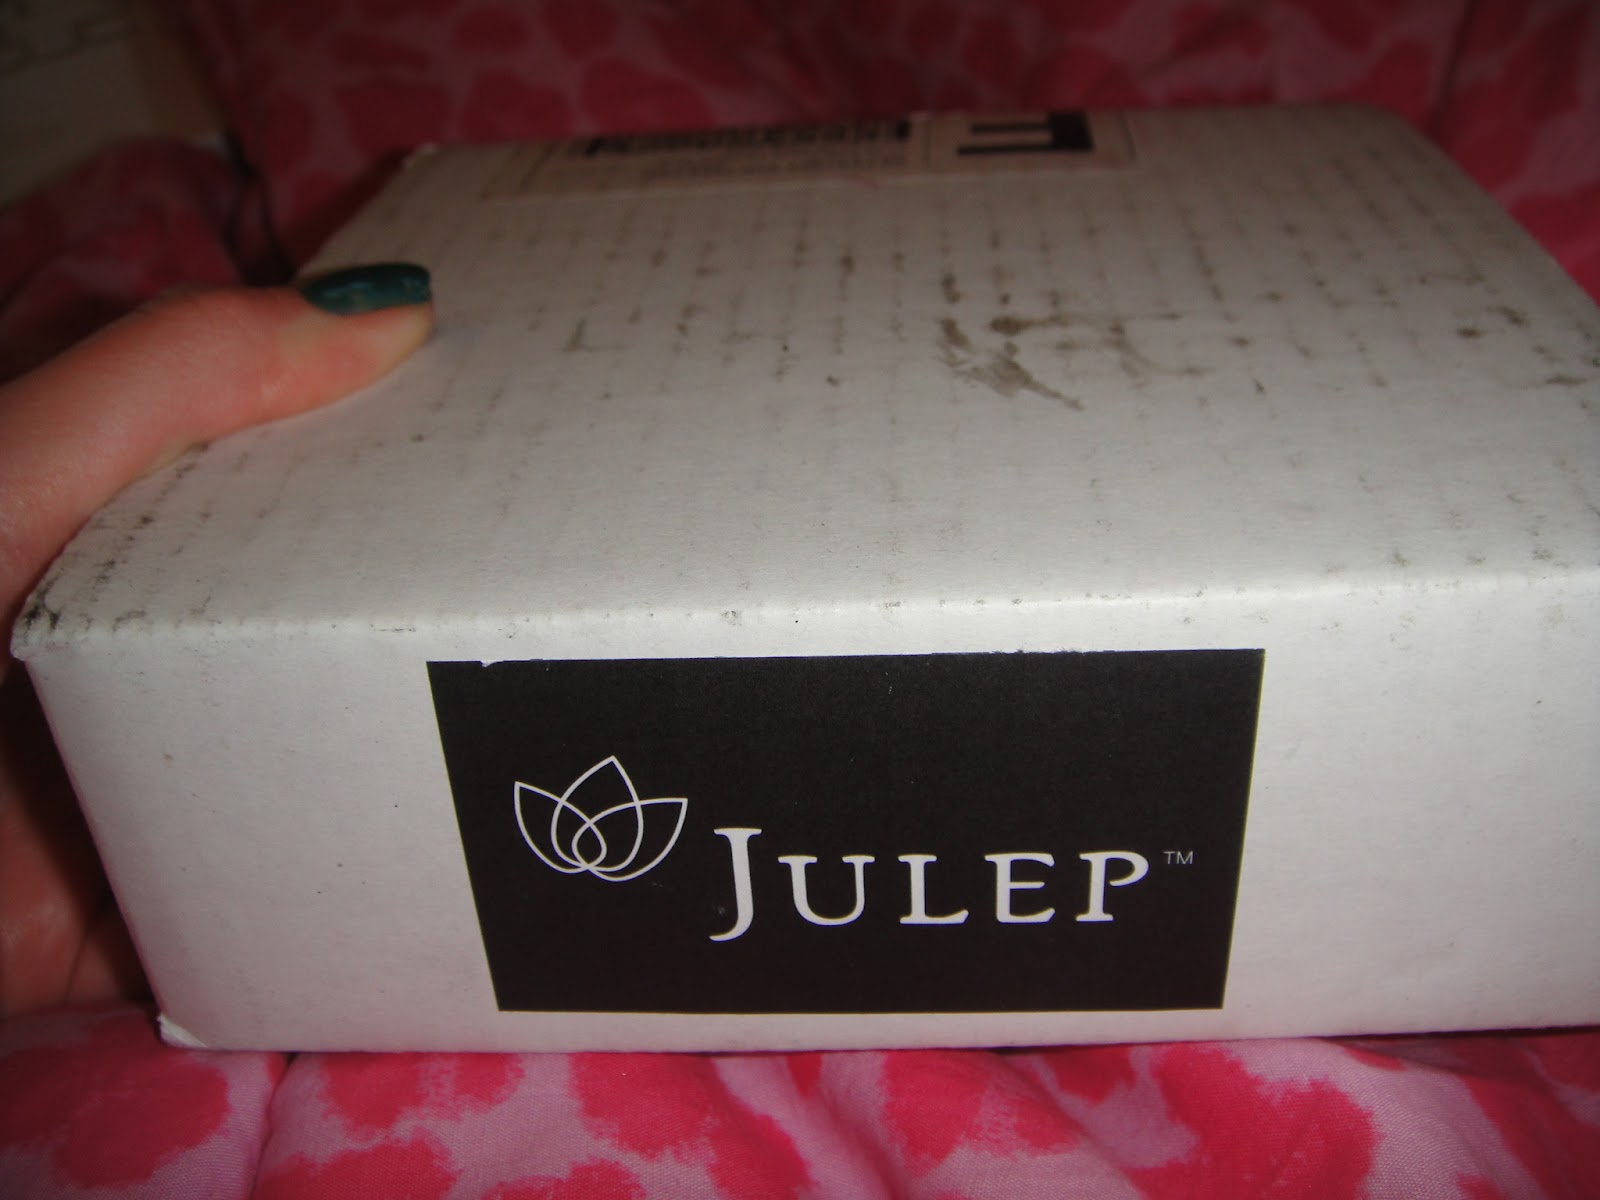 julep maven, julep it girl, julep it girl mystery box, august mystery box, Rachel, Basecoat, Sandra, Megan, Jessica